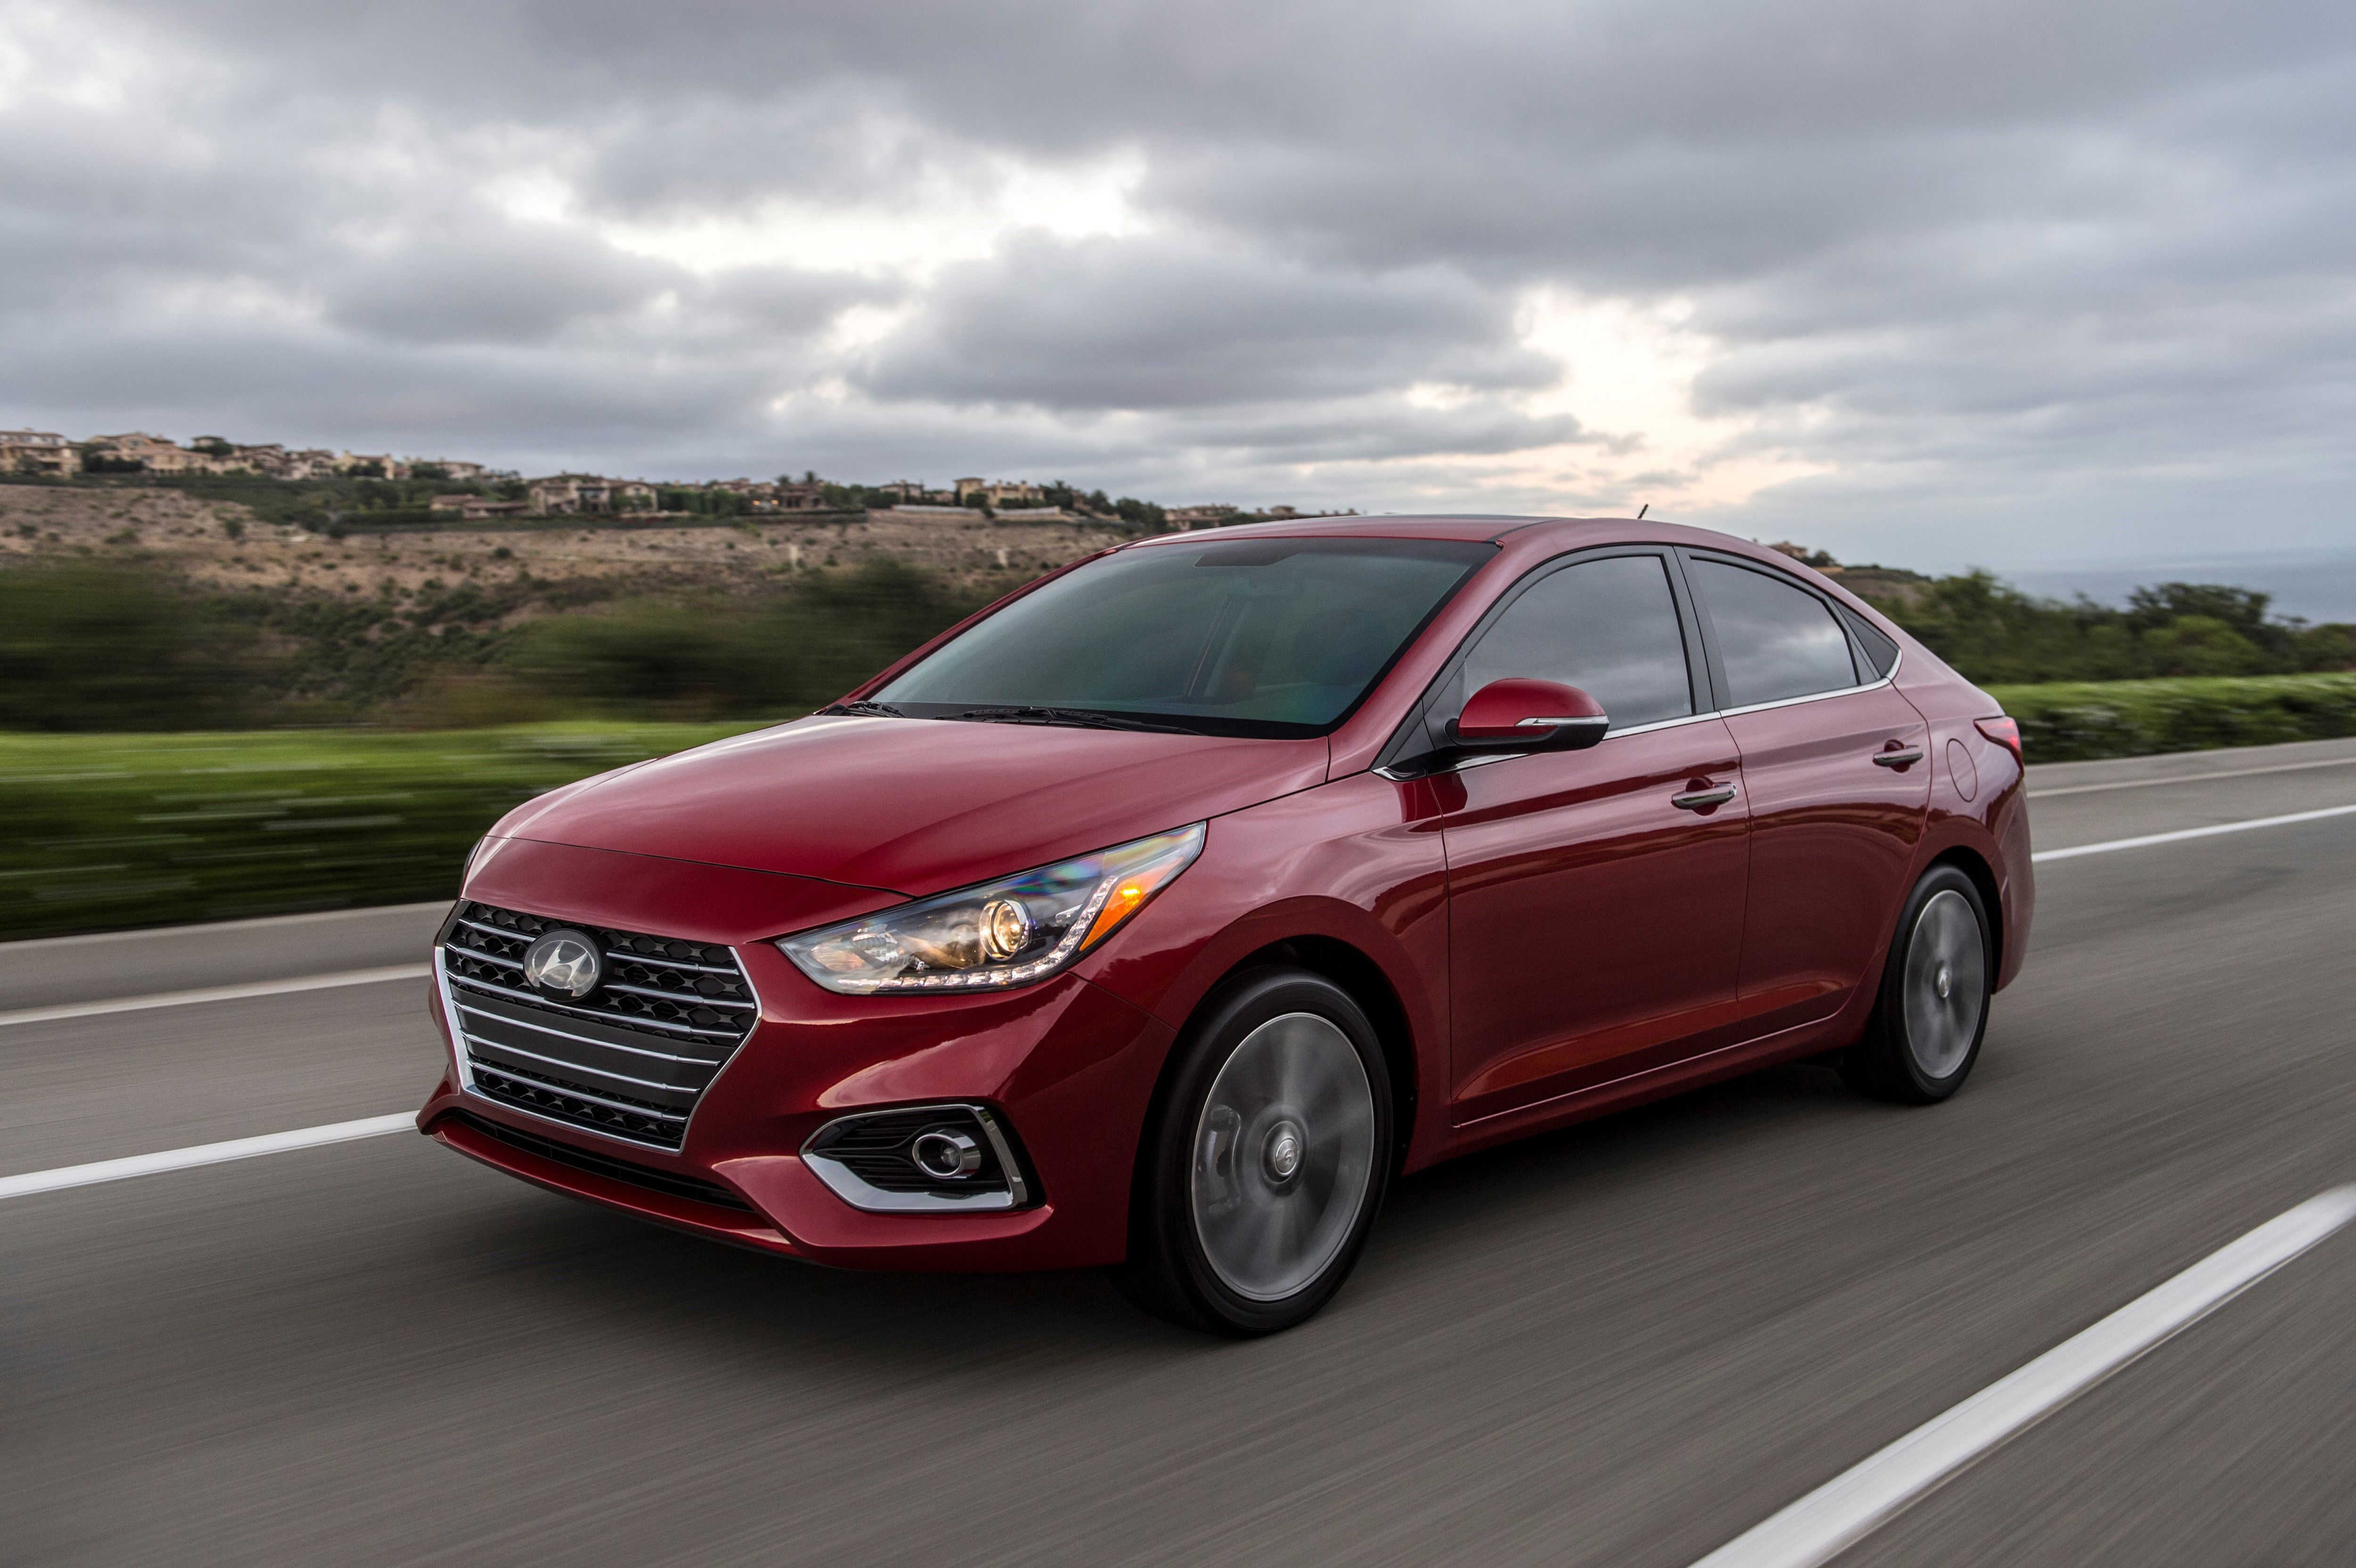 2020 Hyundai Accent Price and Release date